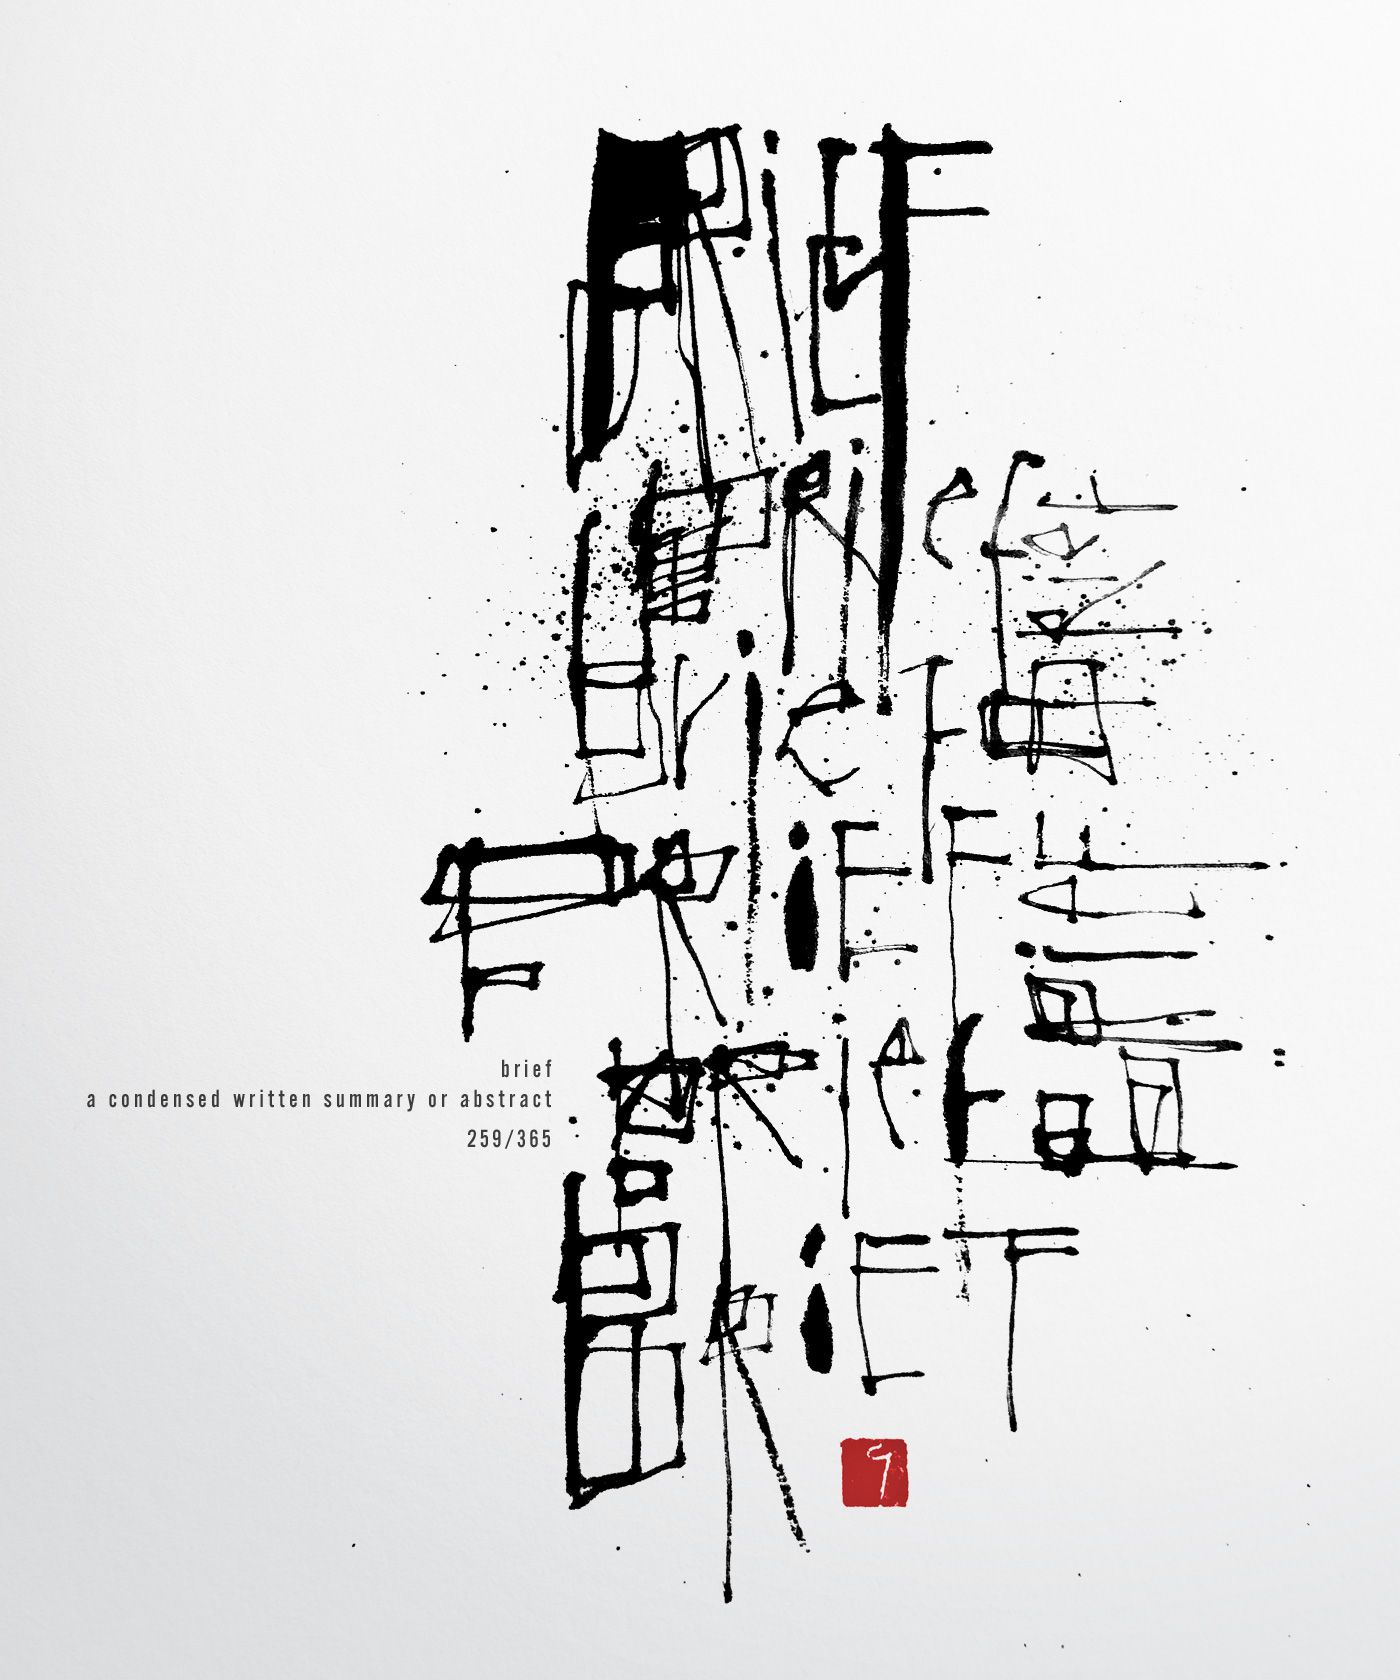 brief | essential information  書道作品 japaneseart japanese calligraphy 書家 田川悟郎 Goroh Tagawa